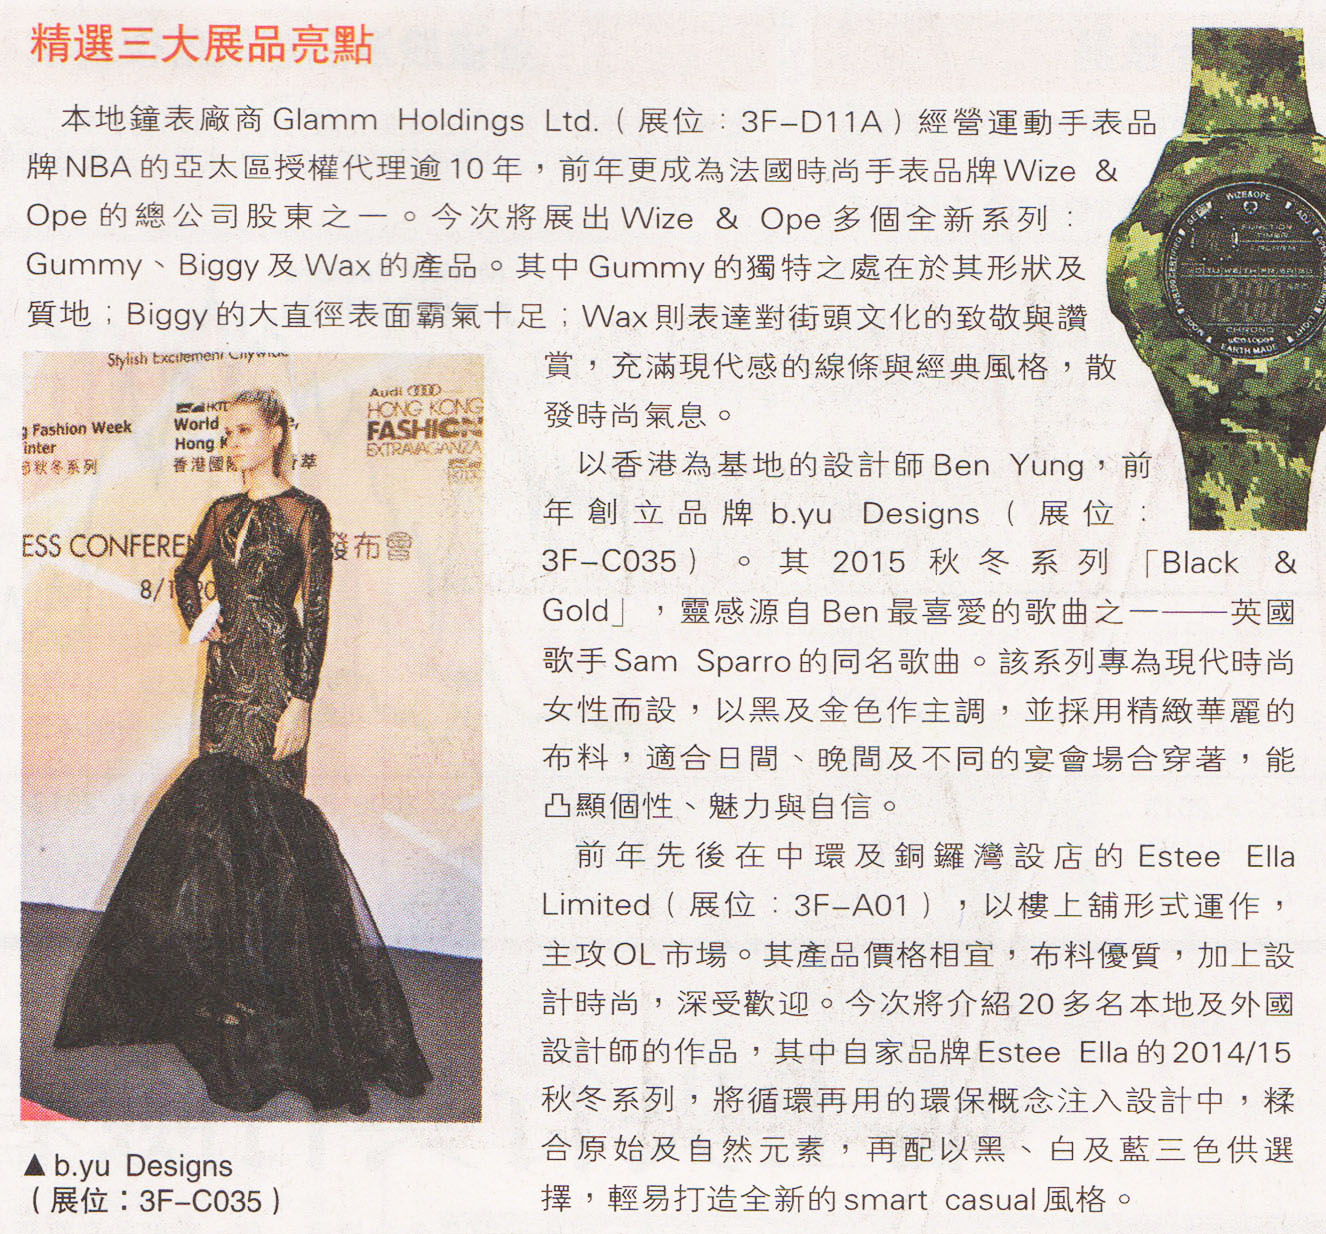 MING PAO NEWSPAPER 明報 Published 19 January 2015